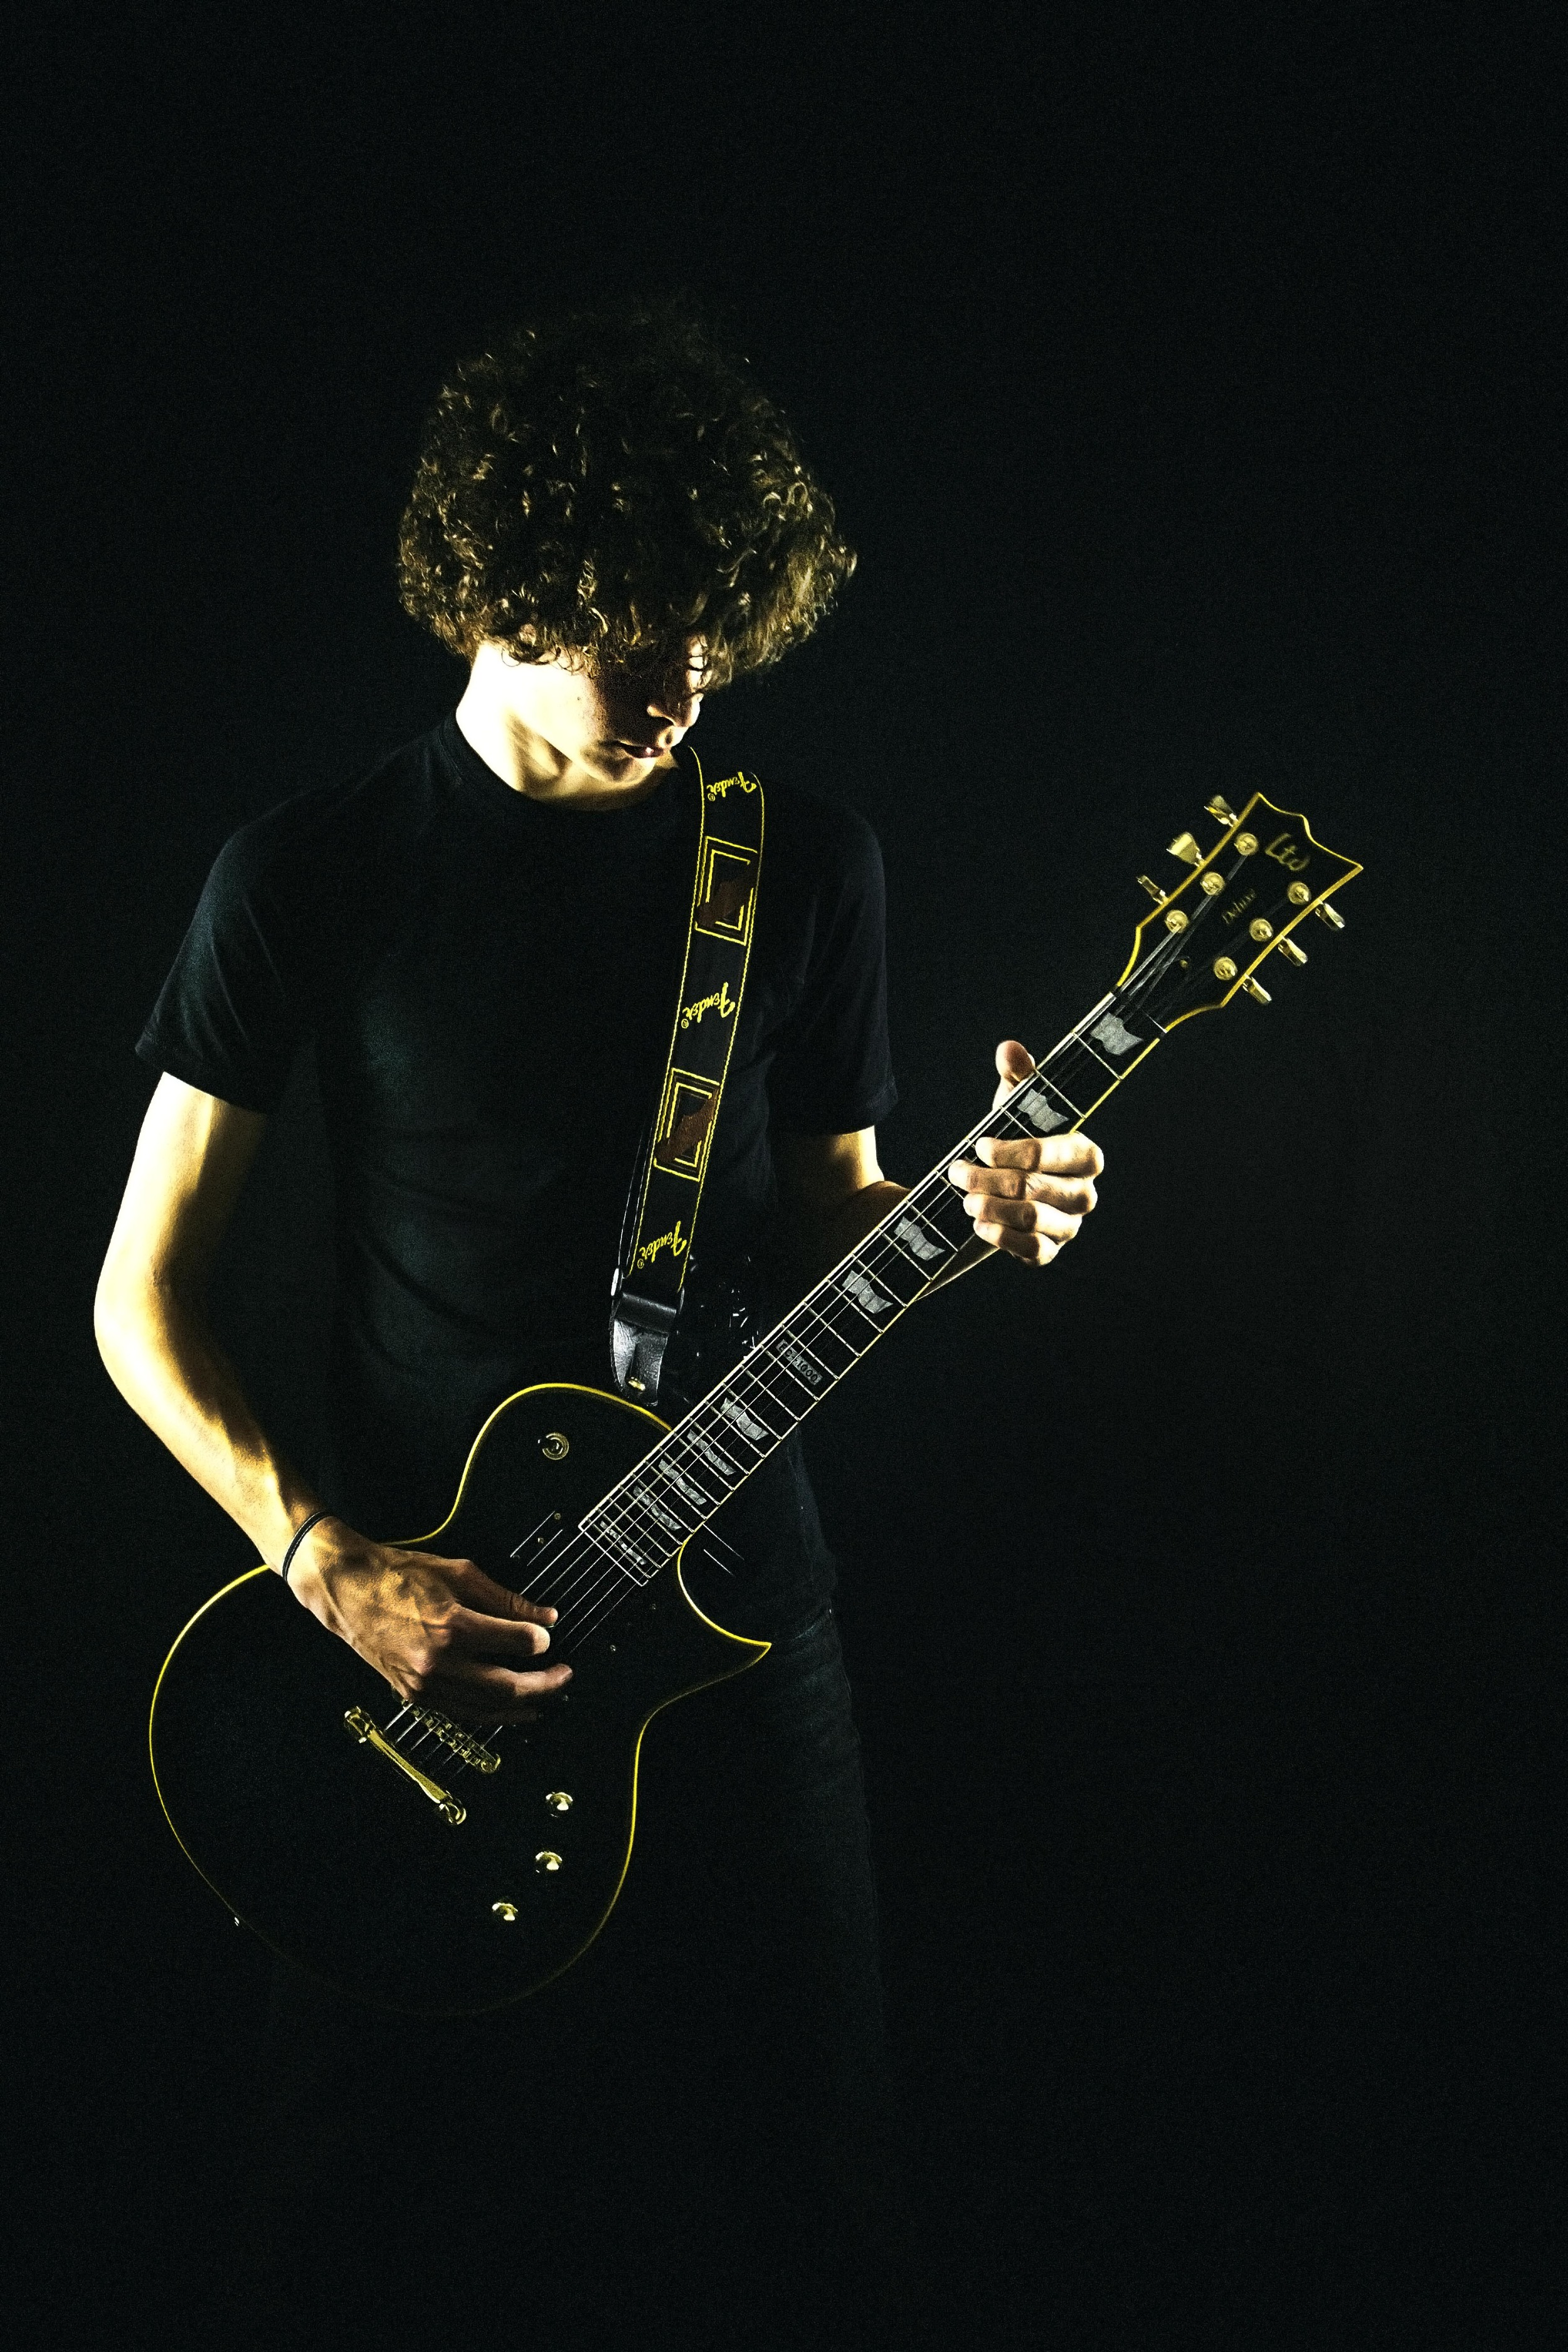 A 2 light setup in the studio with a black backdrop to catch highlights and to lighten the guitar.